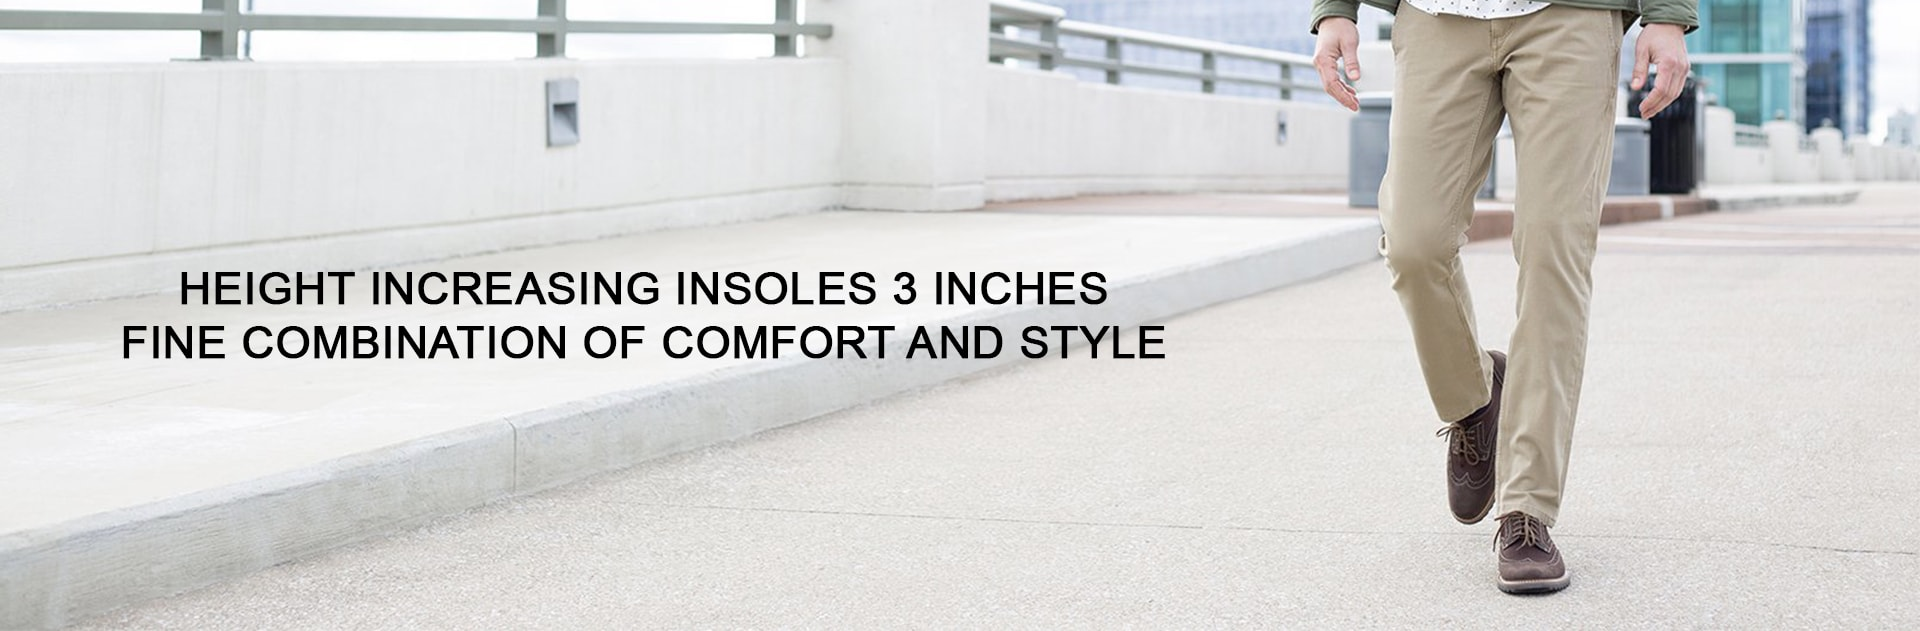 3 Inches Height Increasing Elevator Insoles – Fine Combination of Comfort and Style